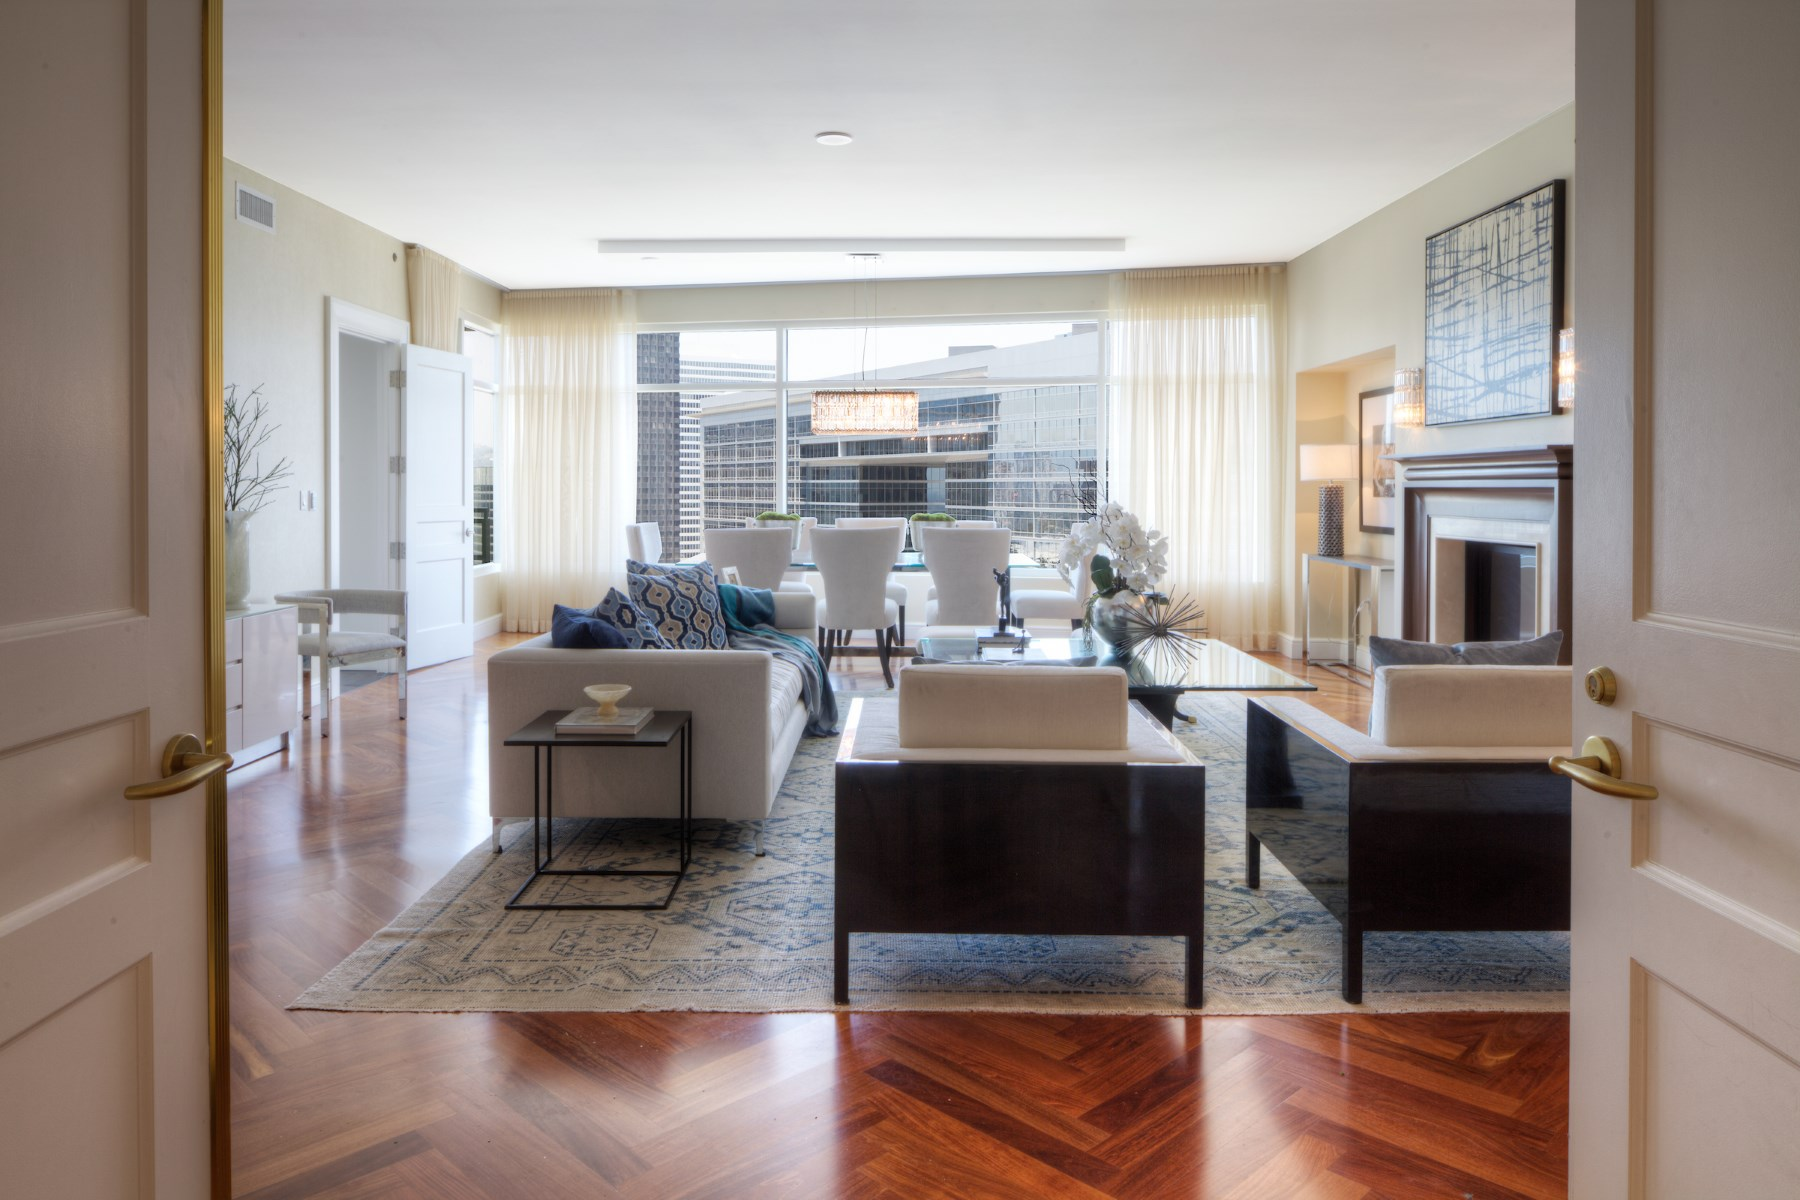 شقة بعمارة للـ Sale في Stylish 3-Bedroom Condo in The Century 1 West Century Drive Unit #11C, Century City, Los Angeles, California, 90067 United States